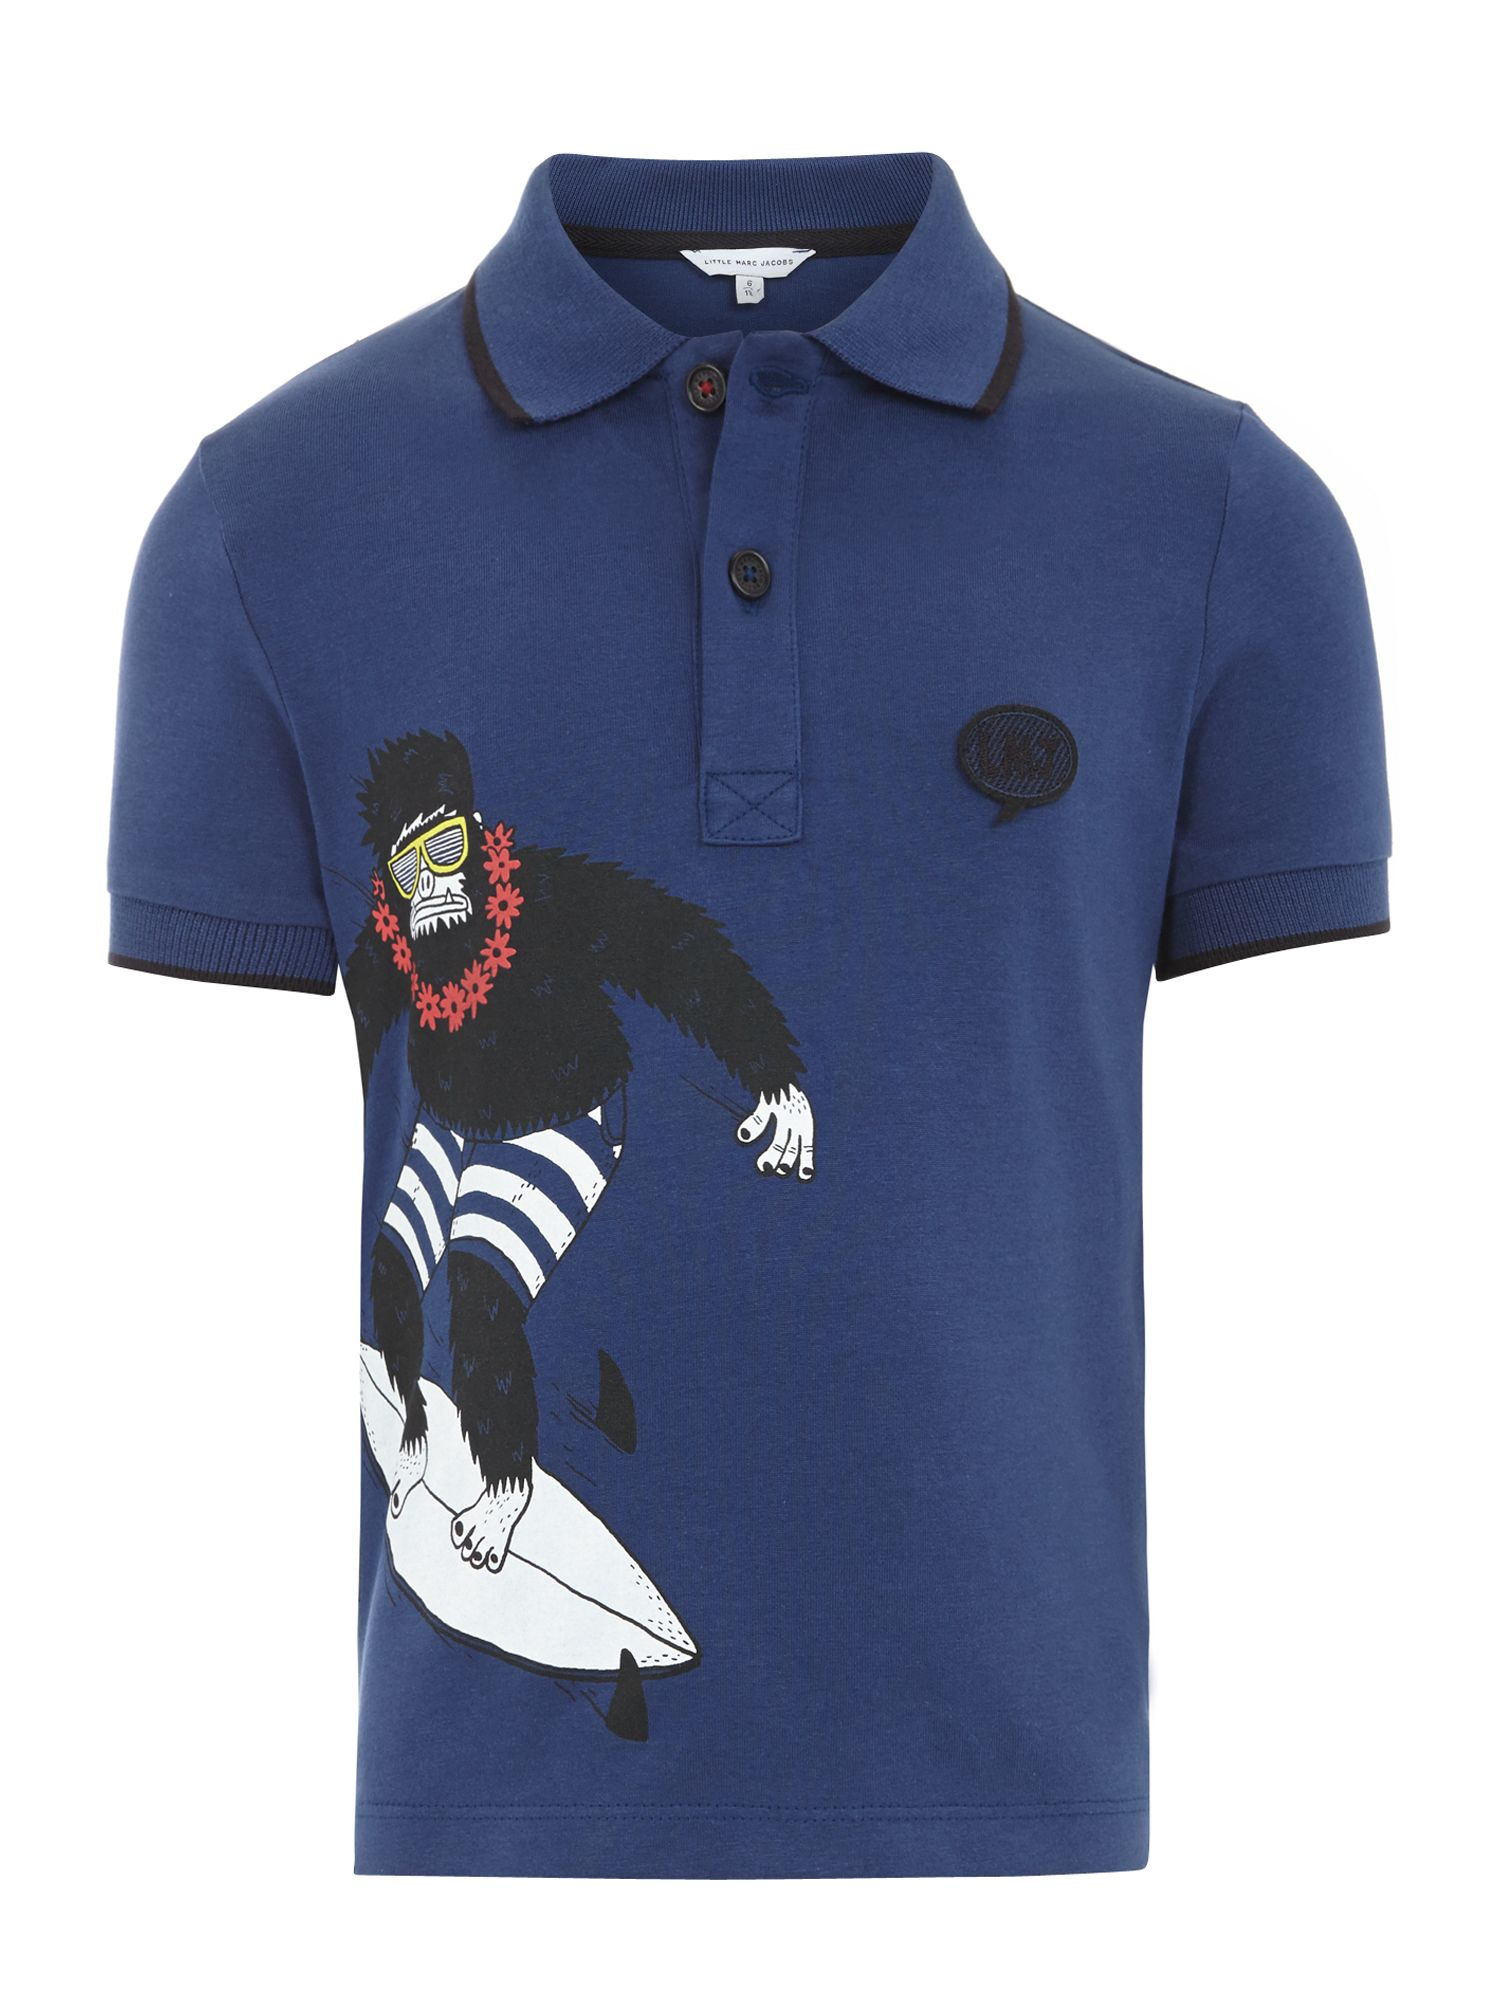 Boy`s illustration polo shirt